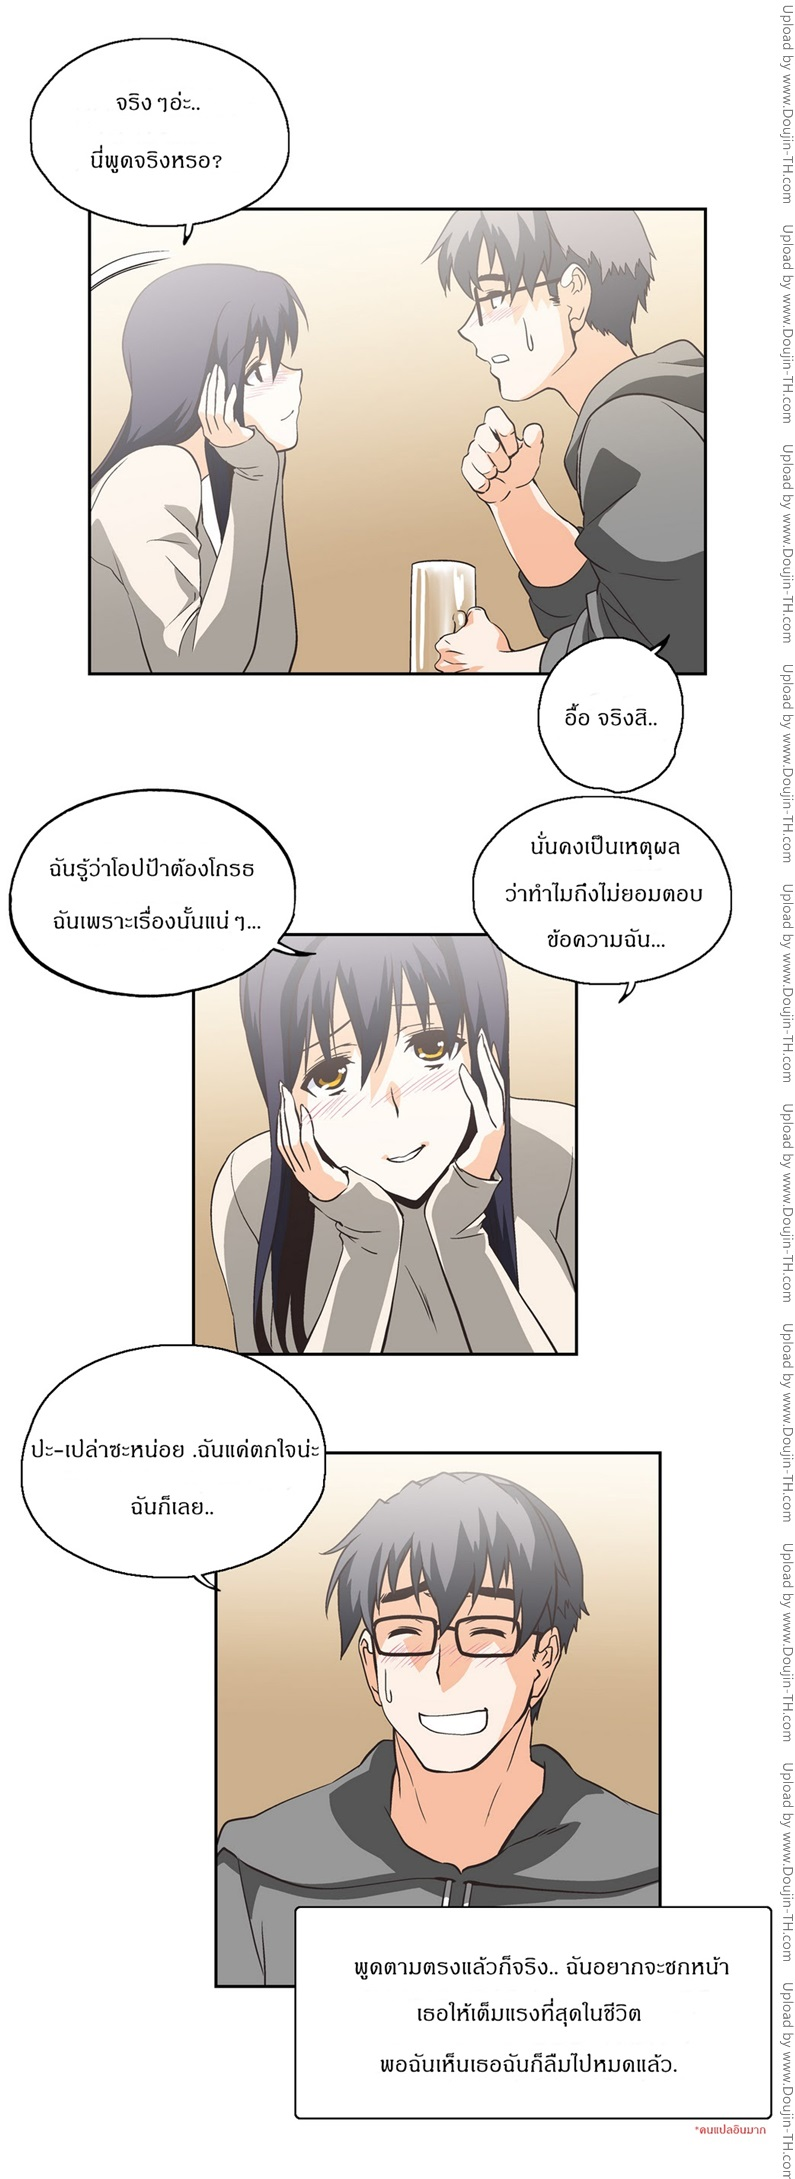 SStudy 16 - Bad Expectation - หน้า 20